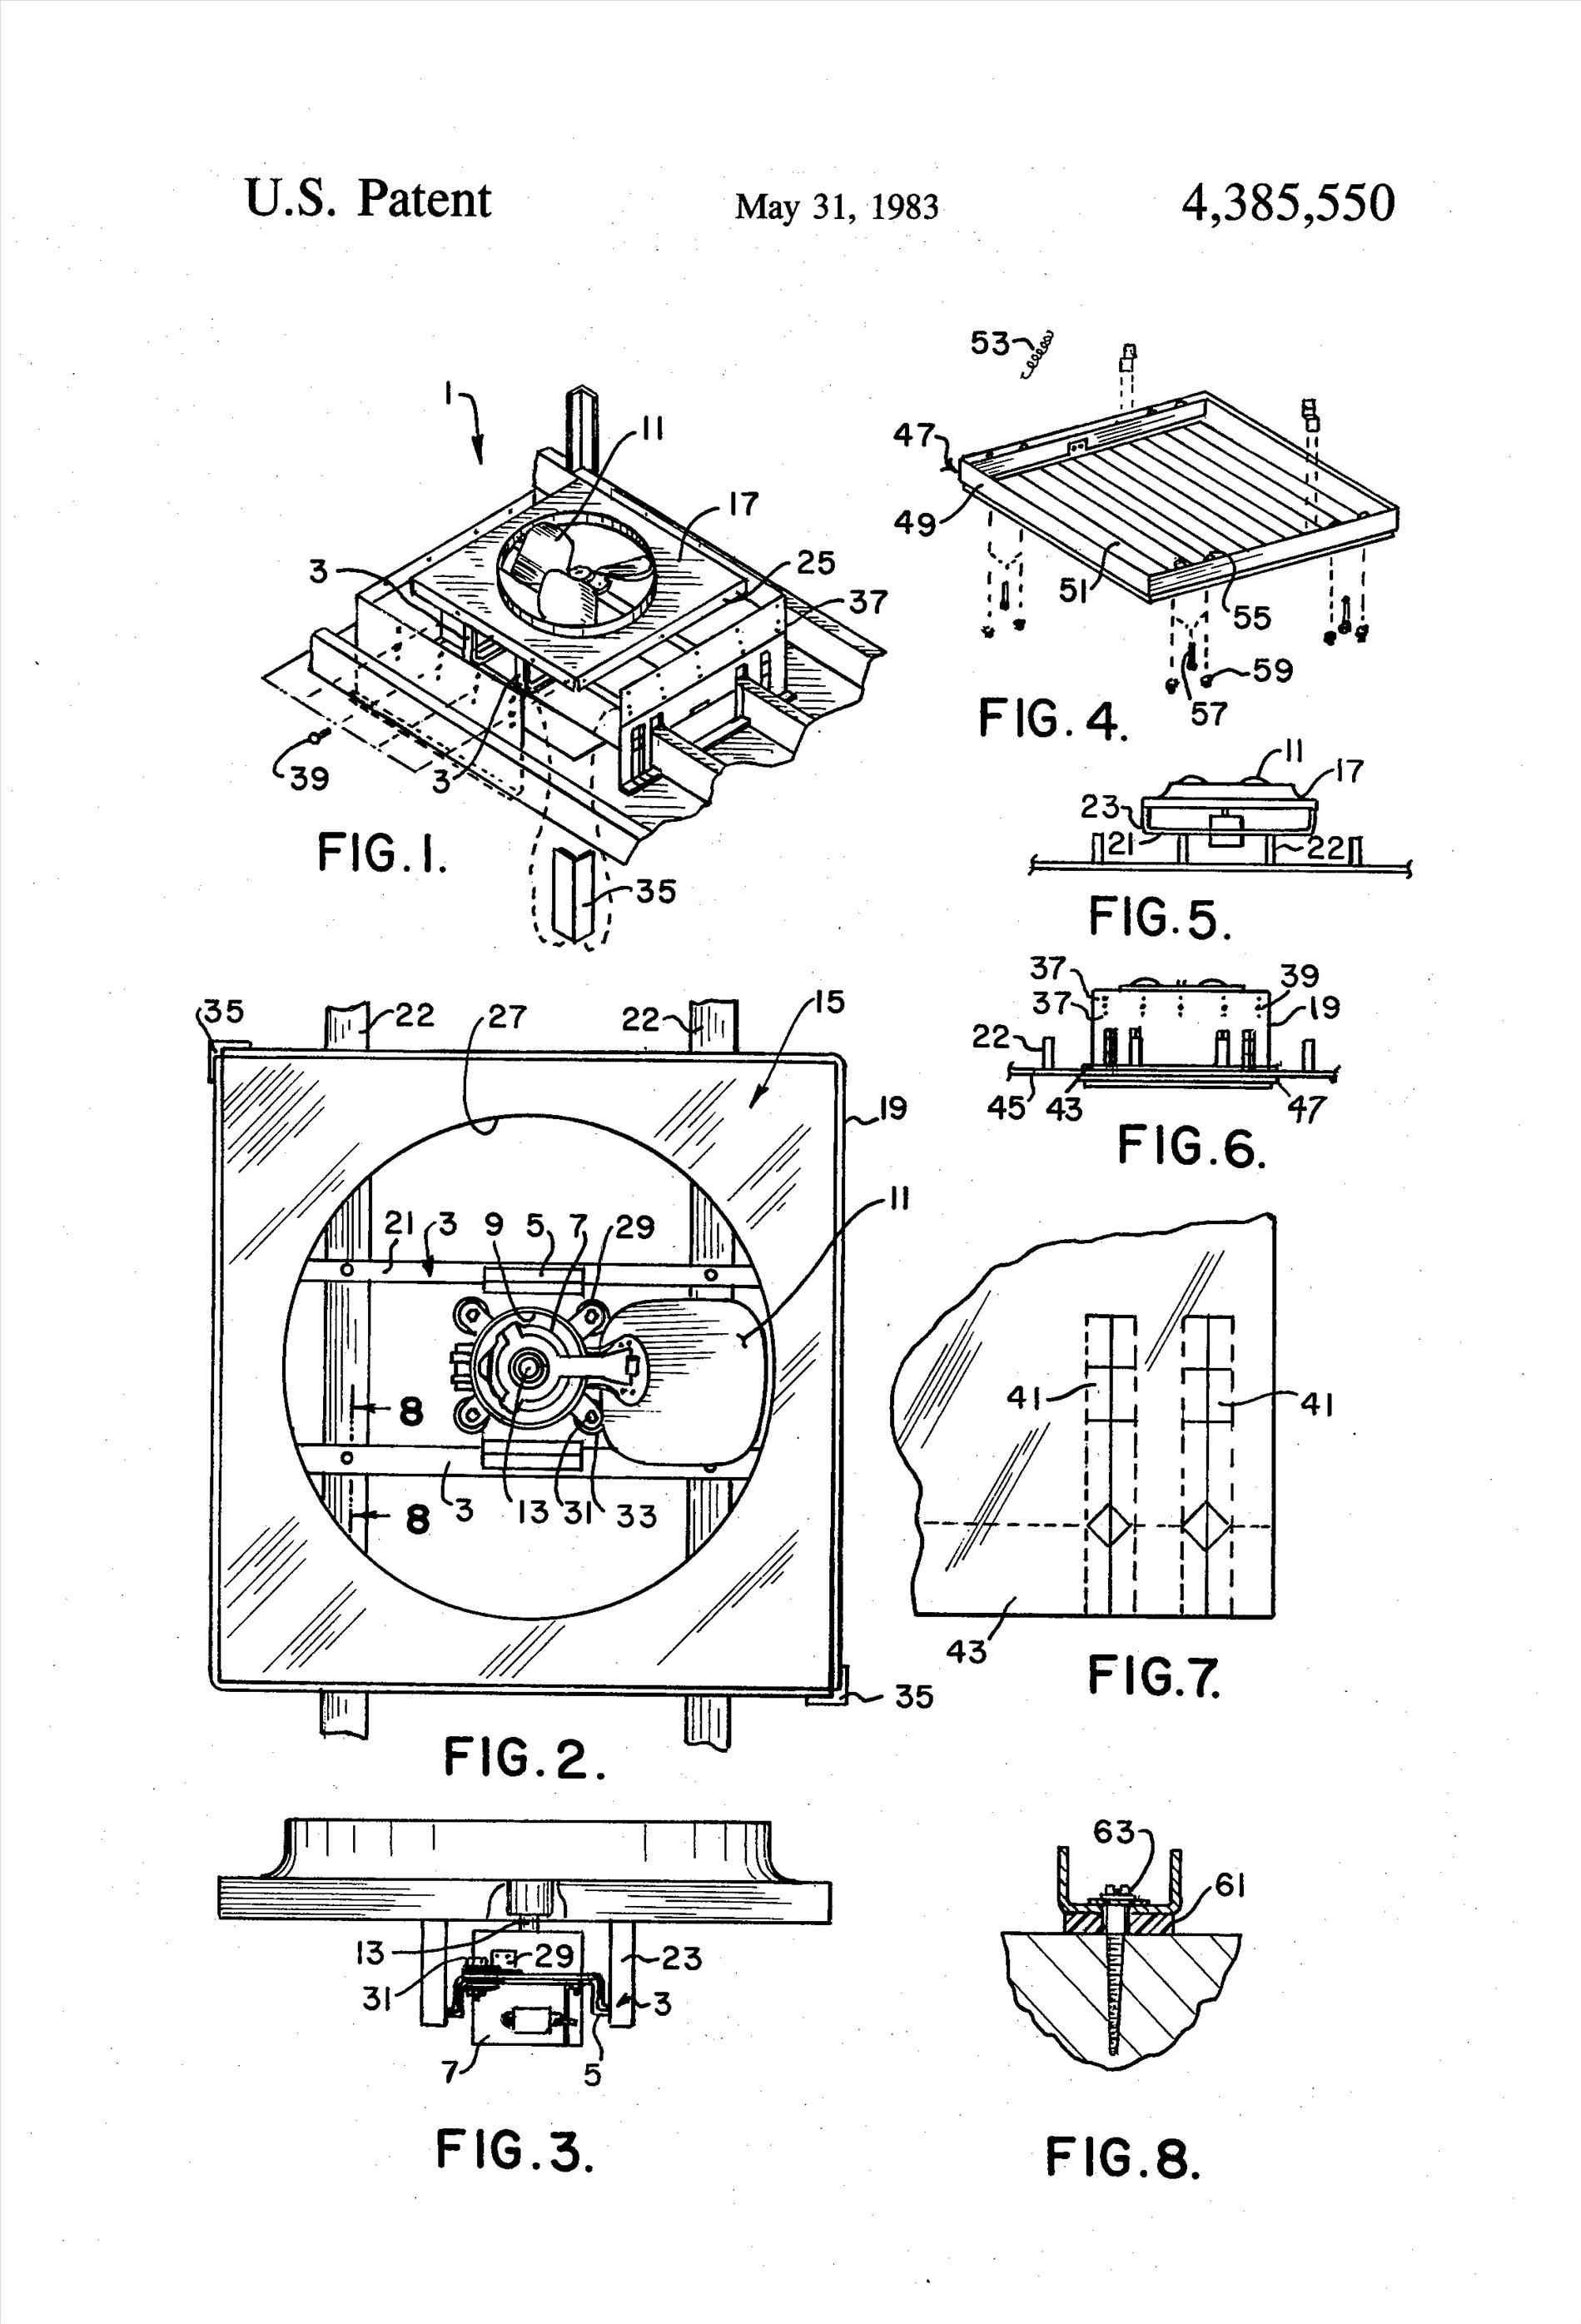 Attic Fan Patents Remodeling Leslie Locke Attic Fan Space Ideas with size 1899 X 2791